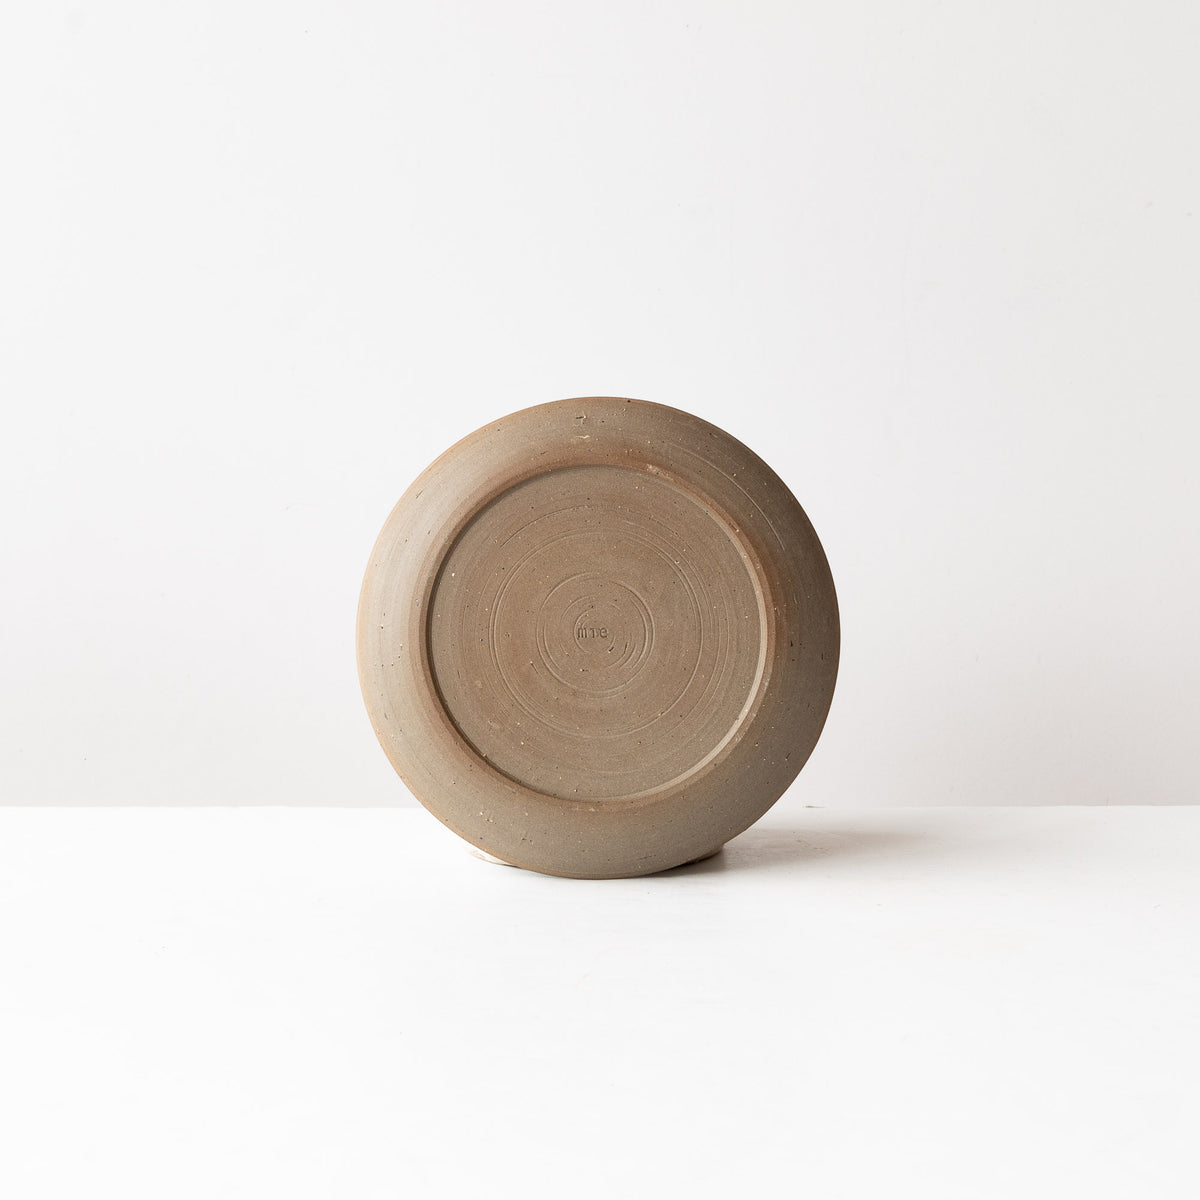 Rear View - Handmade Grey Stoneware Small Plate - Sold by Chic & Basta